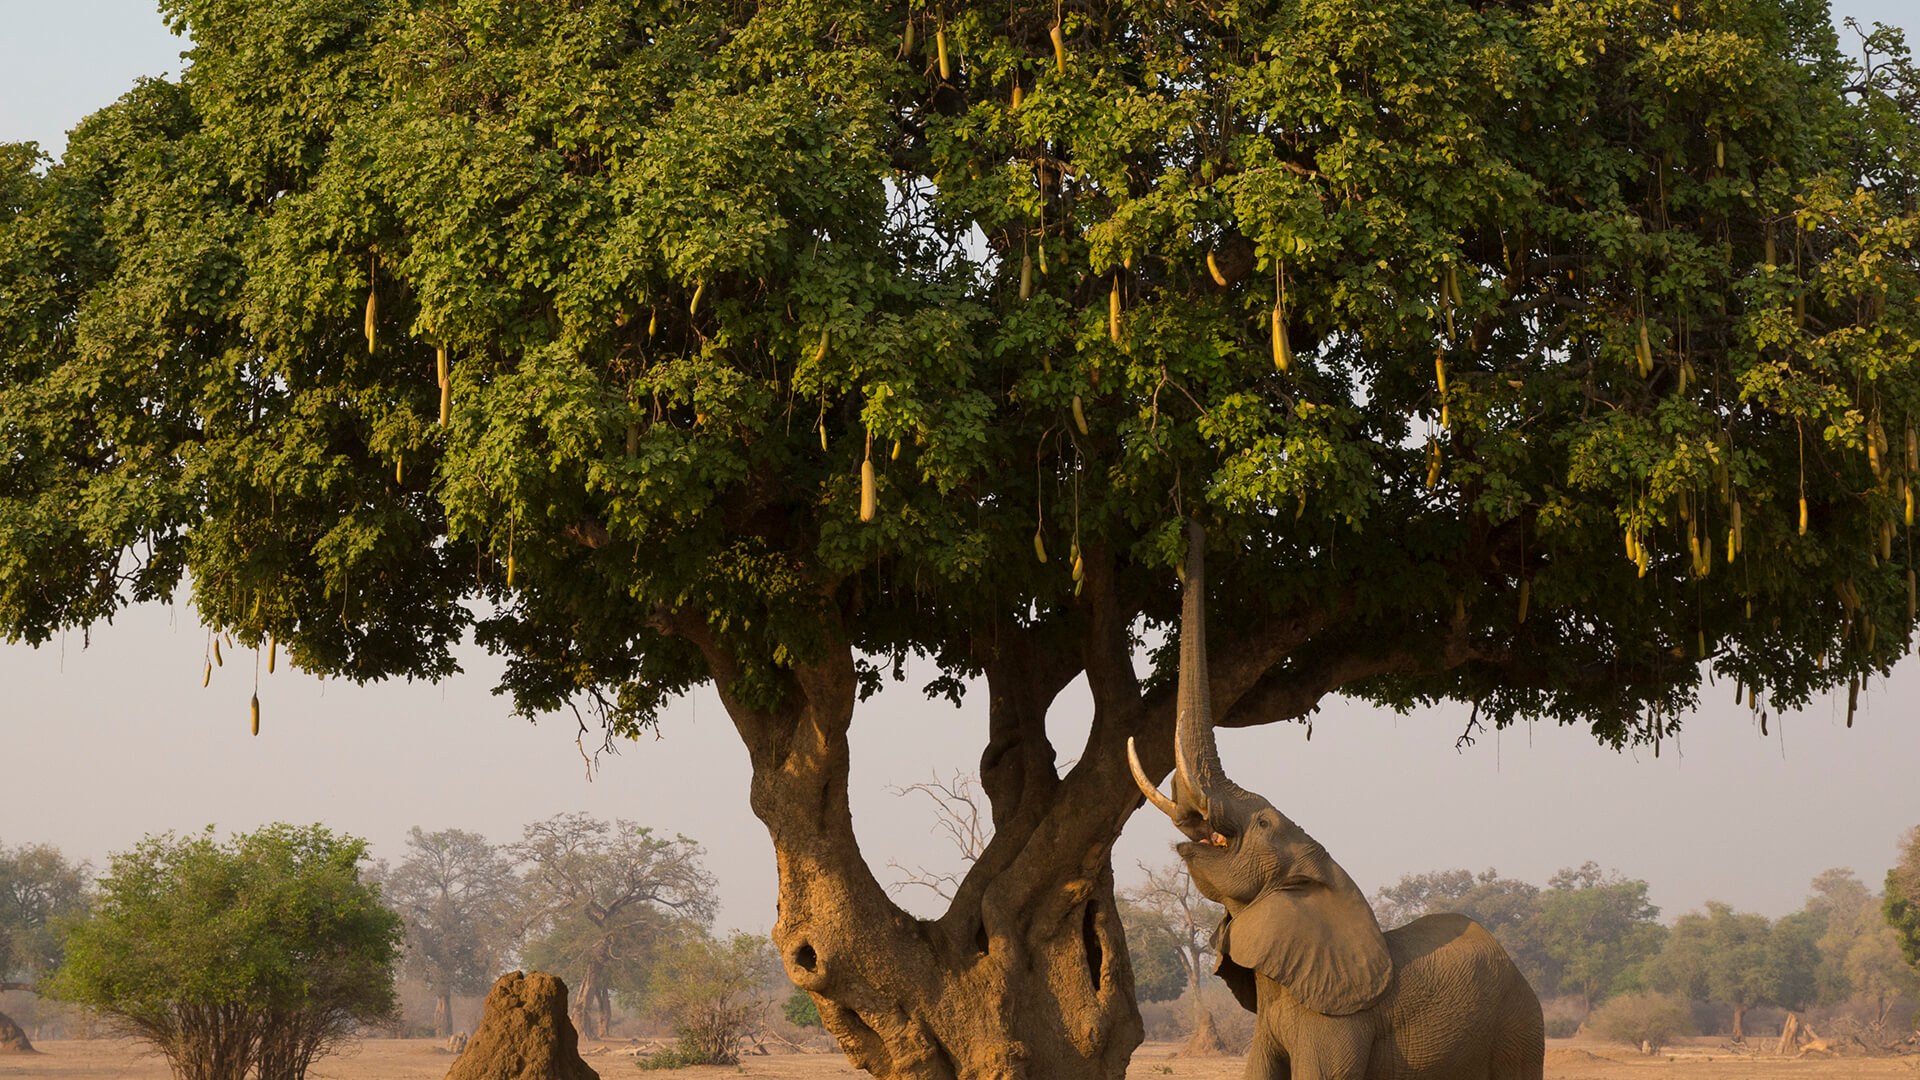 An African elephant using its trunk to grab fruit from a sausage tree.